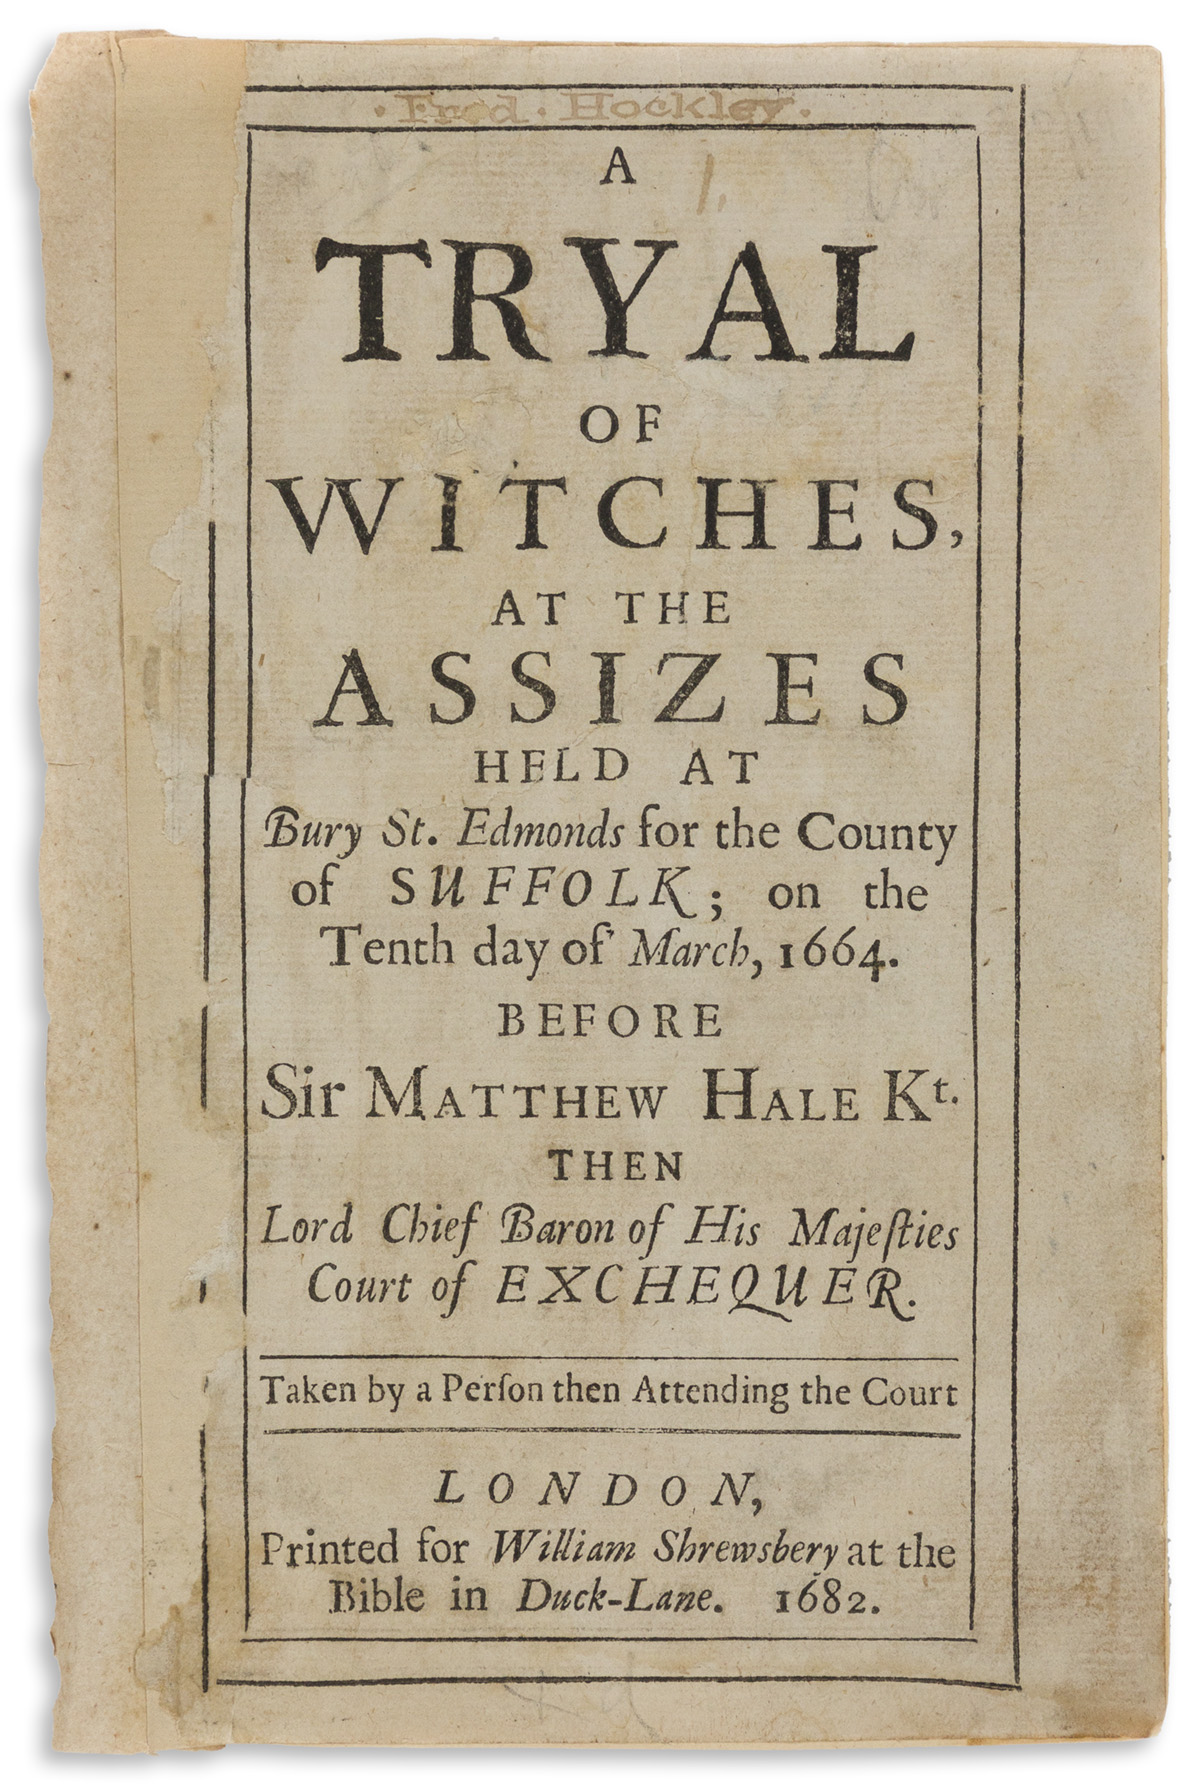 Bury St. Edmunds Witch Trials, 1662. A Tryal of Witches at the Assizes.